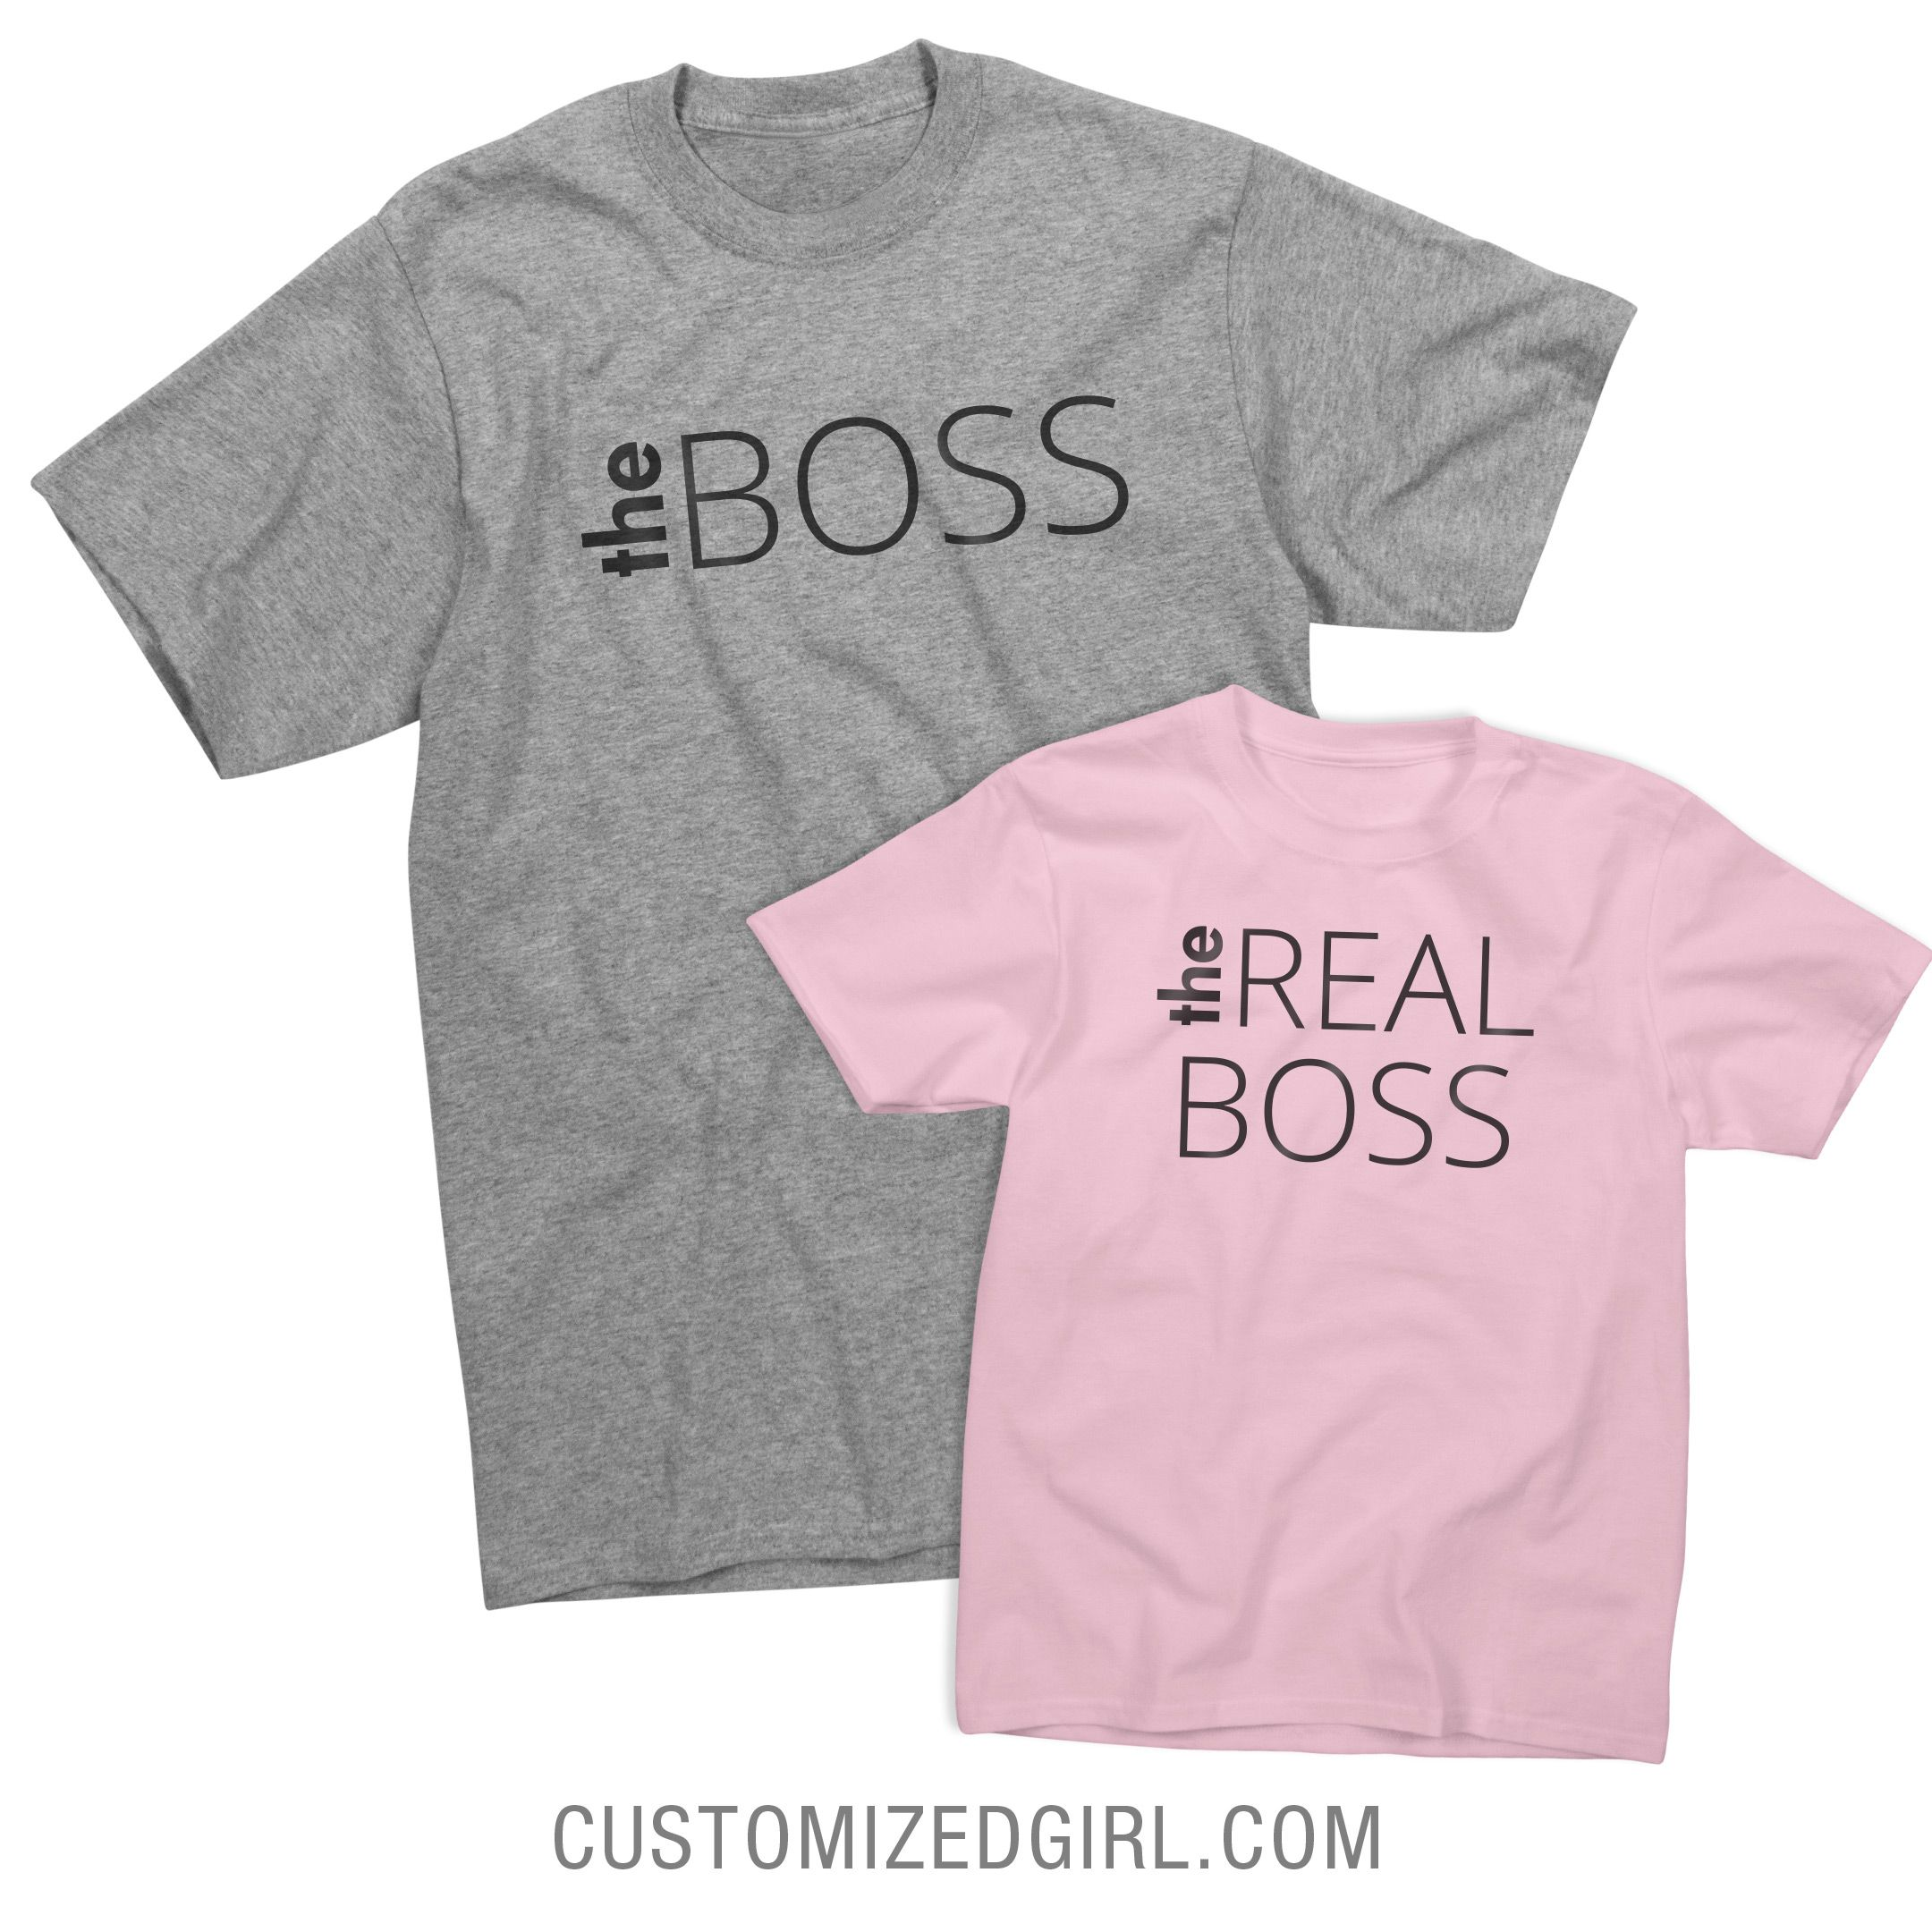 Shirt design couple shirts printing statement shirts - Shop And Customize These Daughter Dad Boss Matching Designs Find The Perfect Daughter Dad Boss Matching Gift